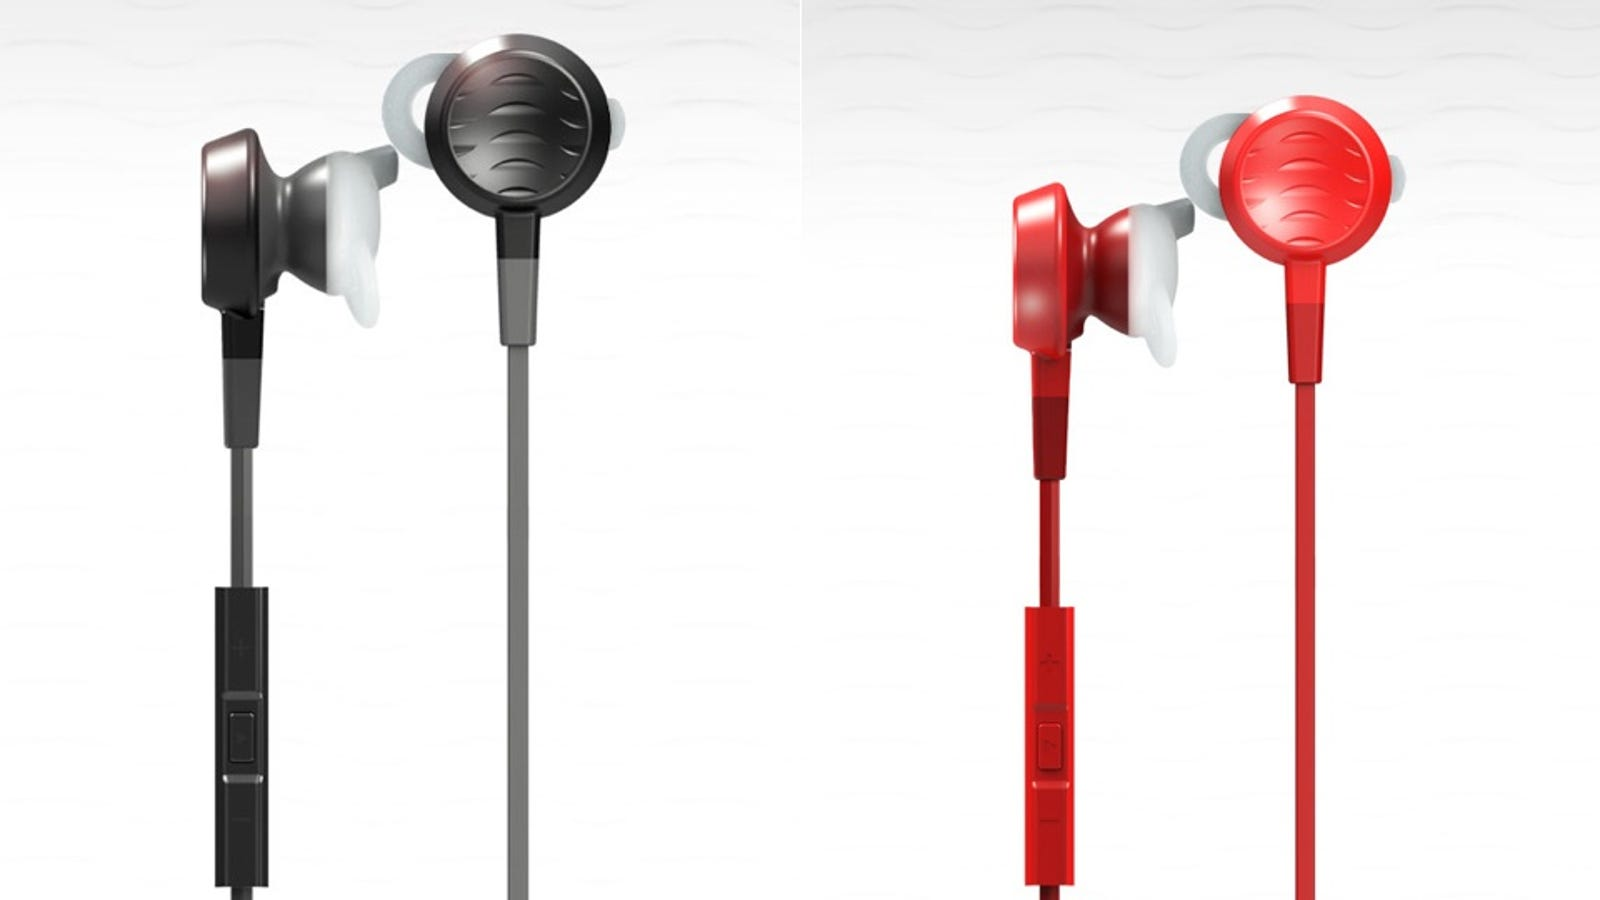 bose noise masking earbuds - Put a Wang in Your Ear Hole